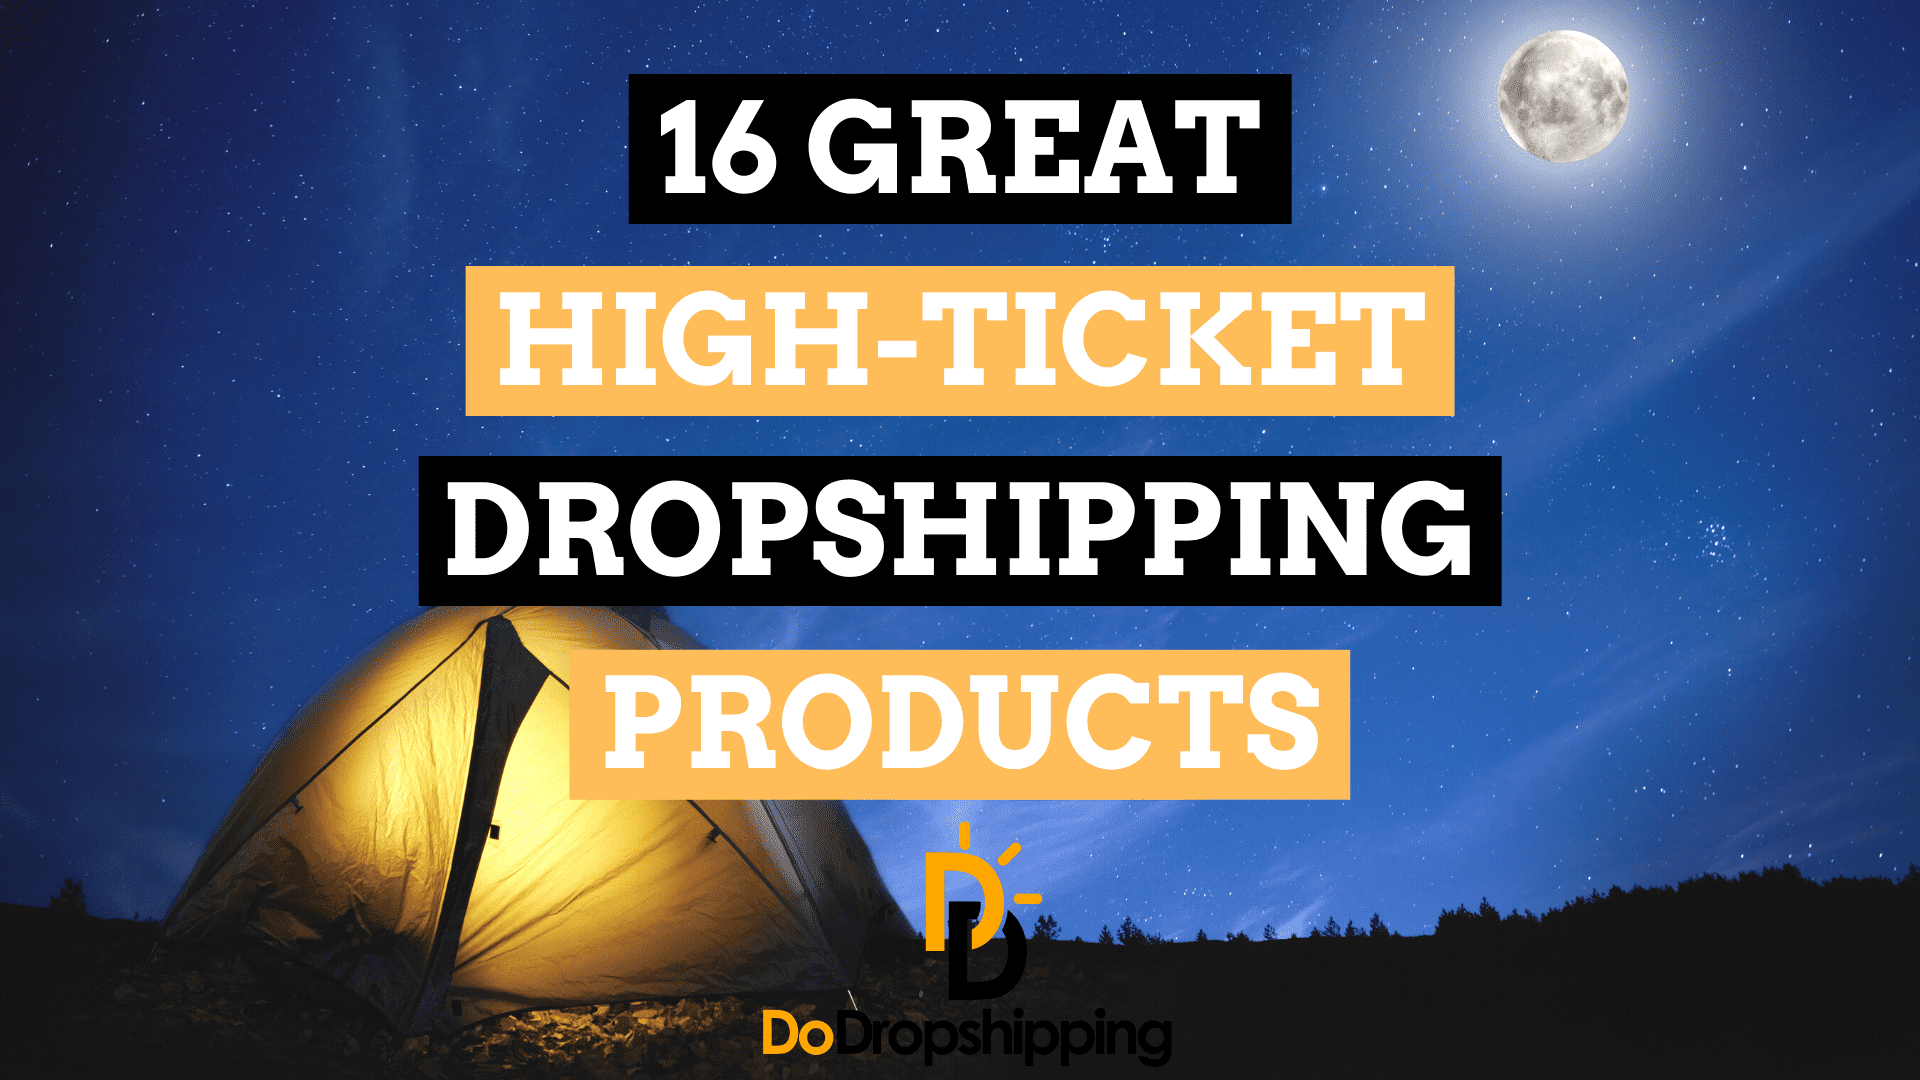 16 Great High-Ticket Dropshipping Product Examples